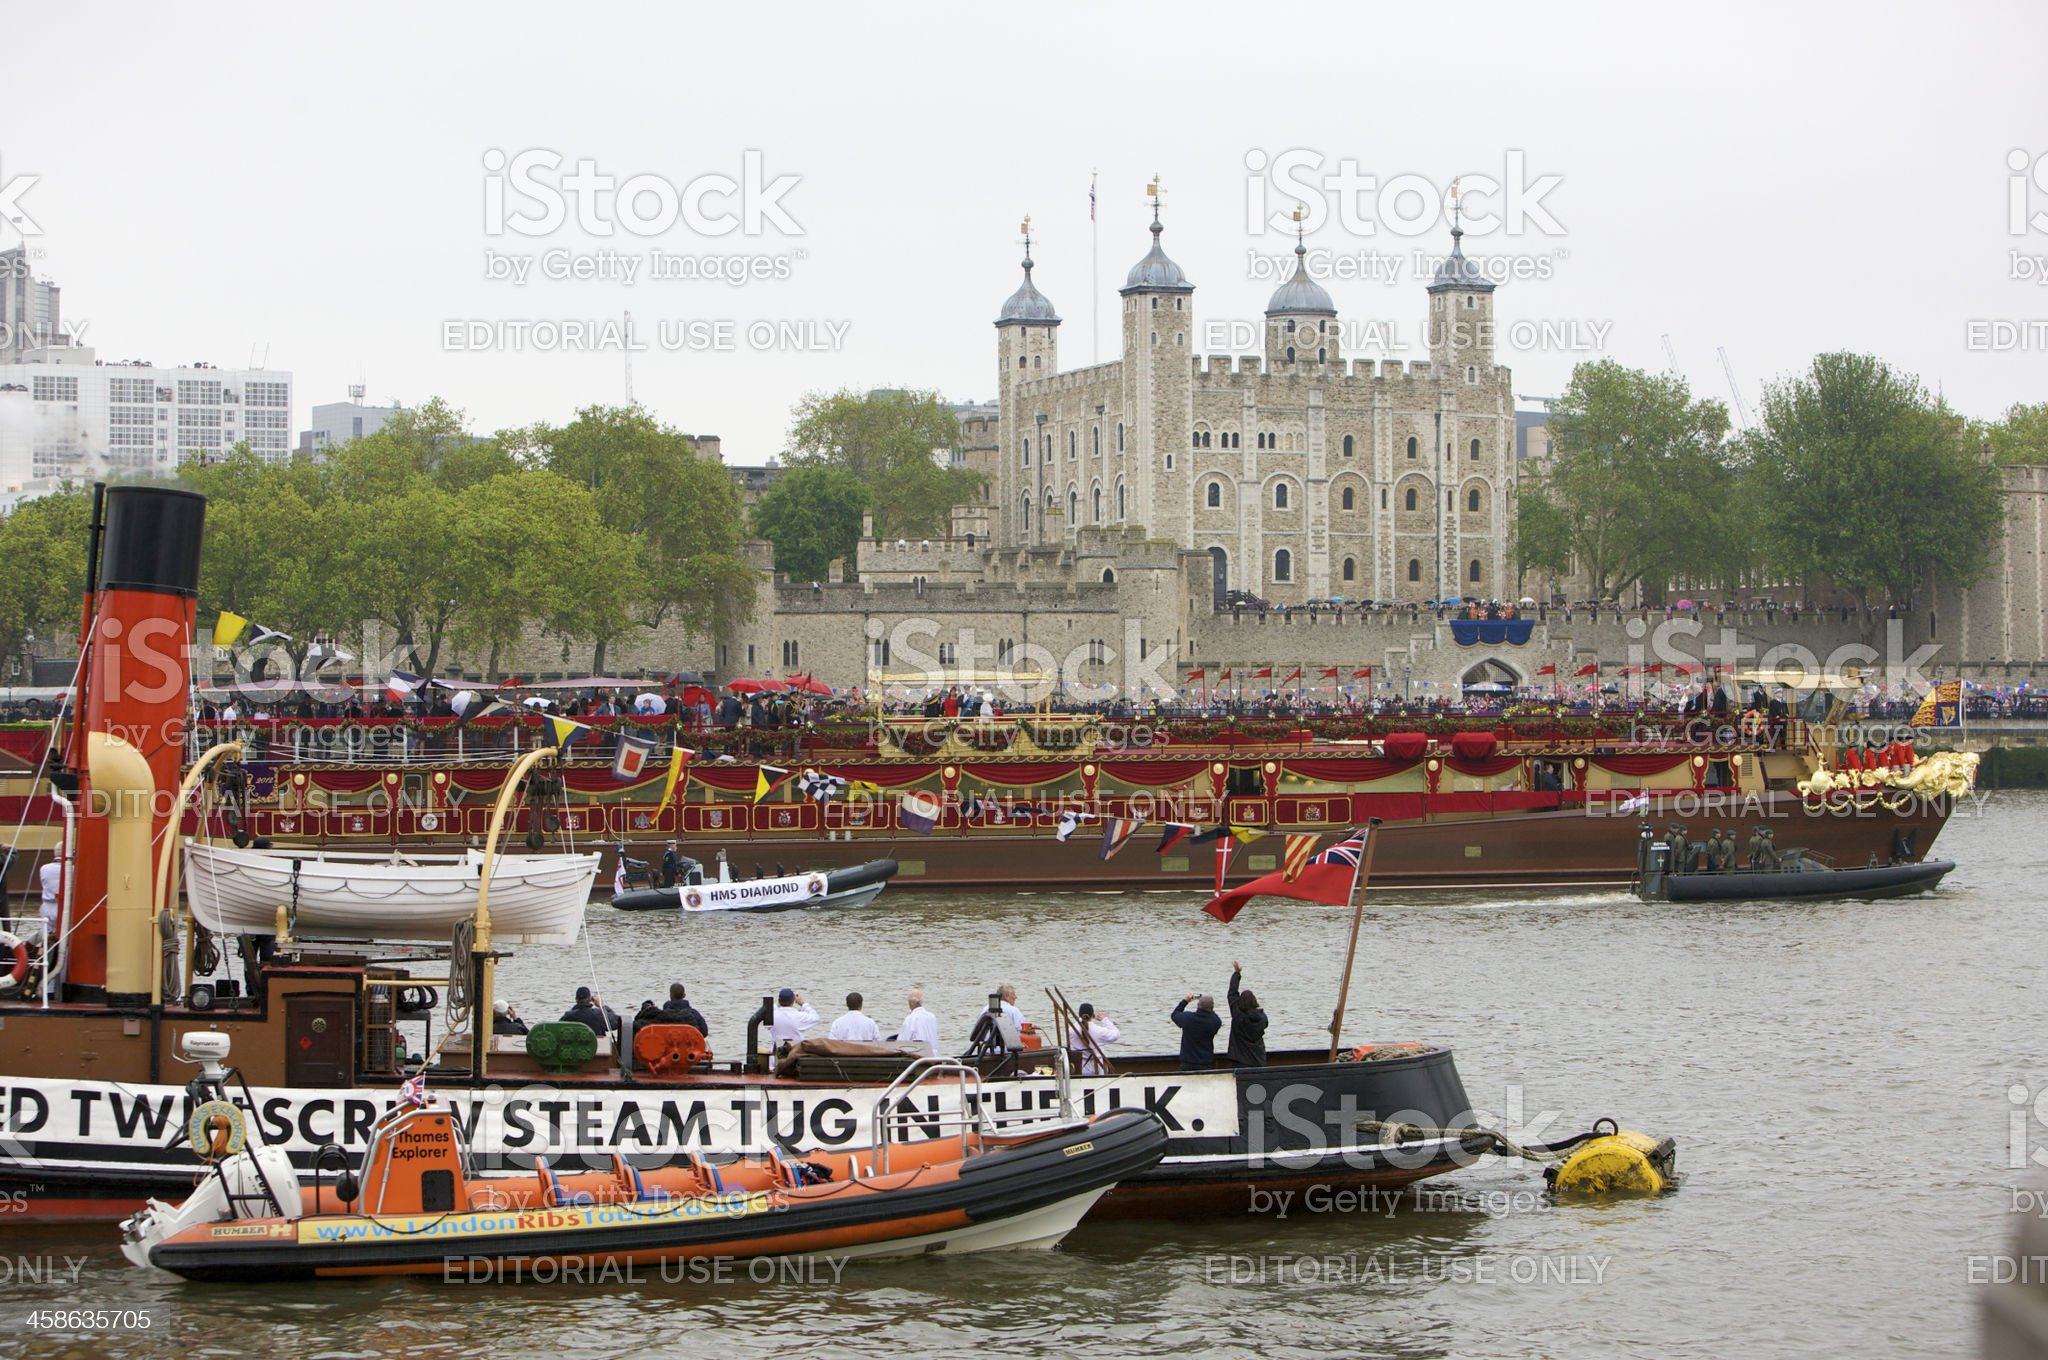 Royal Barge at the Queen's Diamond Jubilee River Pageant royalty-free stock photo